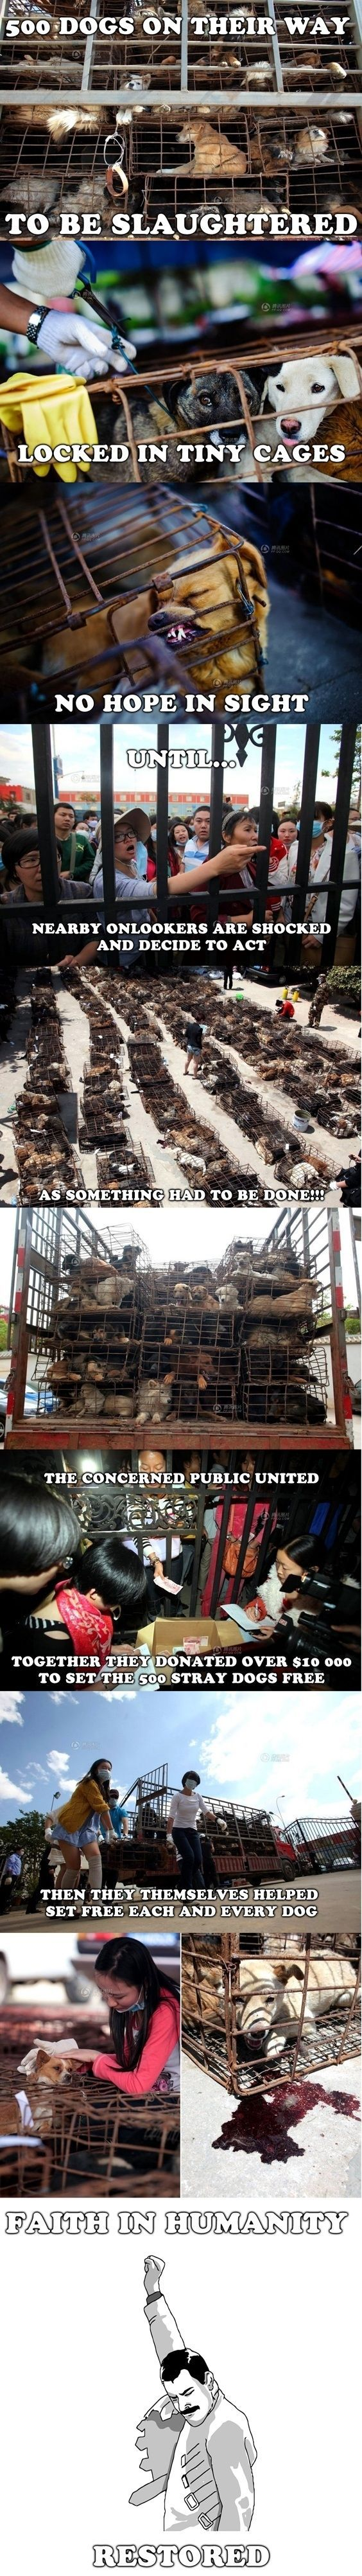 Faith in humanity restored! But then what happened? They need a home...: Animal Rights, Animal Cruelty, Animal Abuse, Faith In Humanity Restored, Faith Restored, Faith In Humanity Dogs, Animalabuse, So Sad